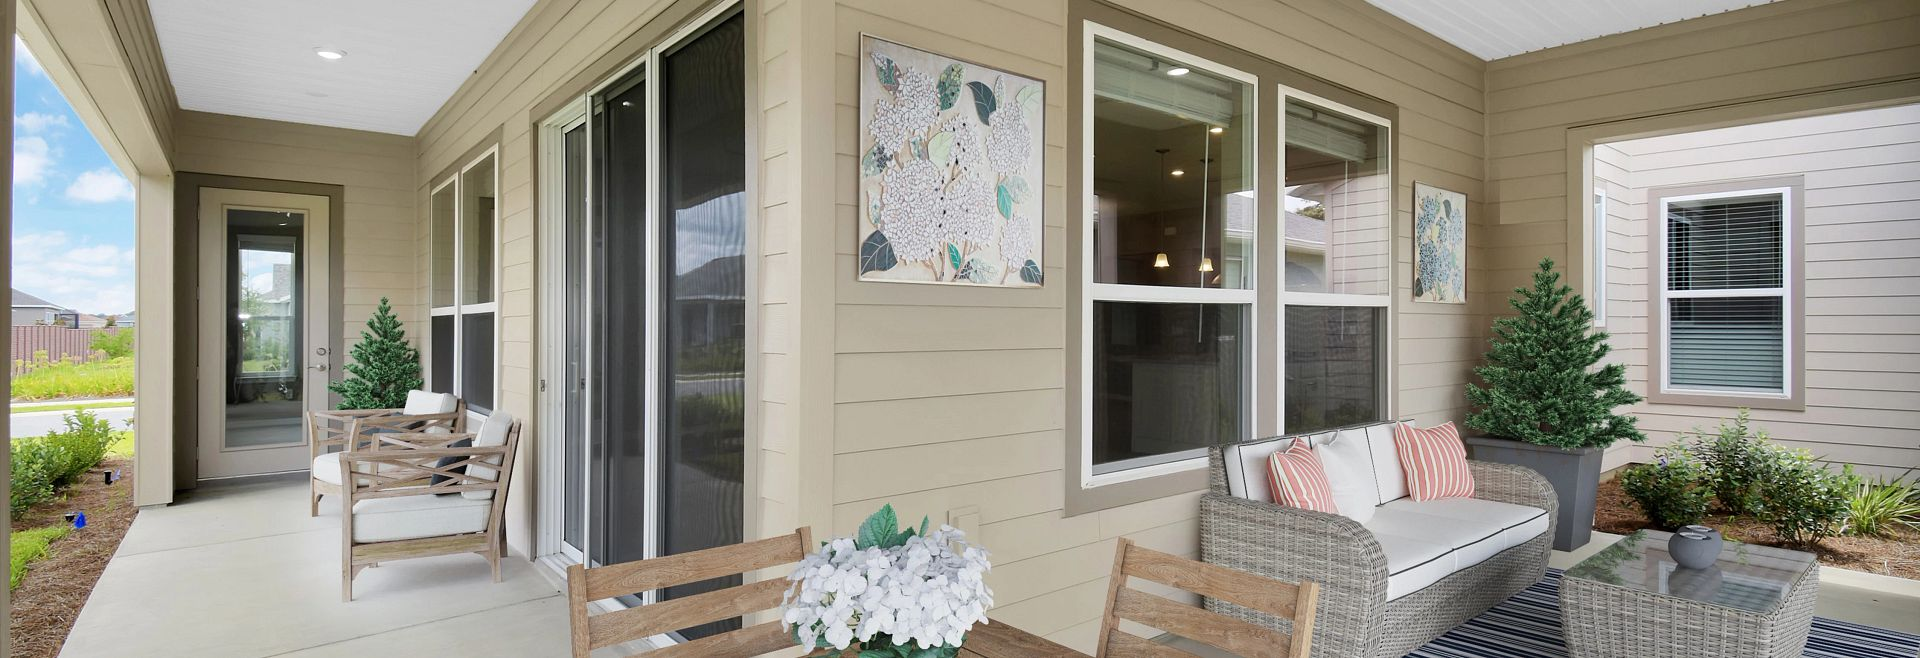 Trilogy at Ocala Preserve Quick move In Virtually Staged Covered Lanai